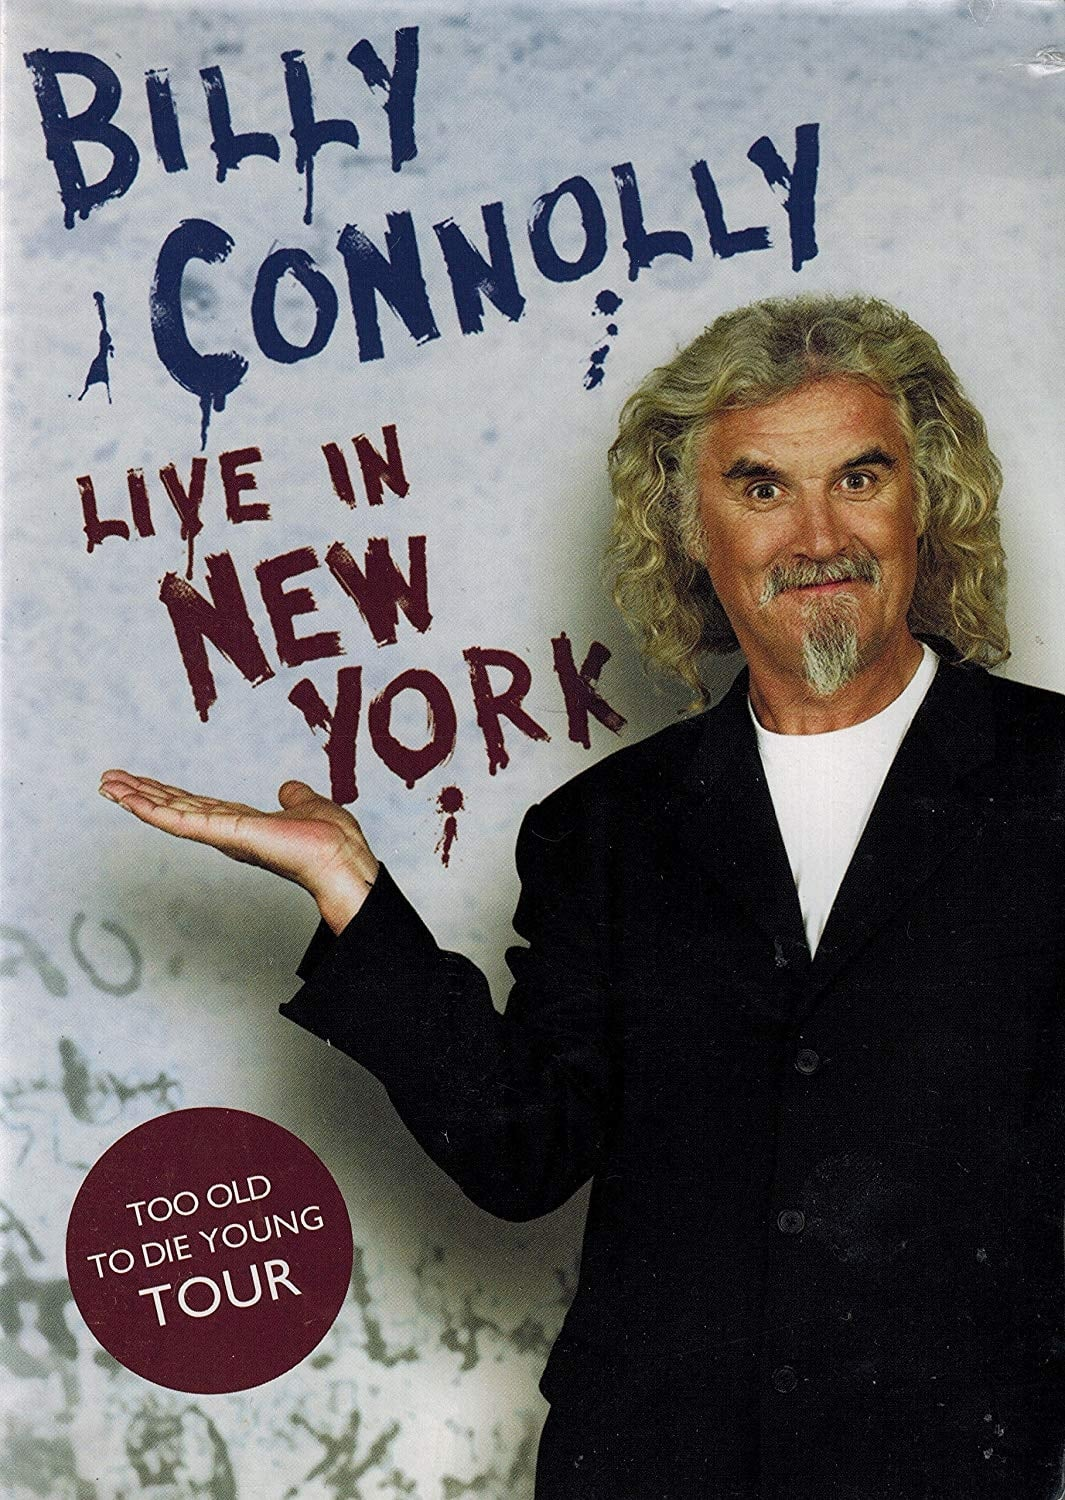 Billy Connolly Live In New York Movie Streaming Online Watch